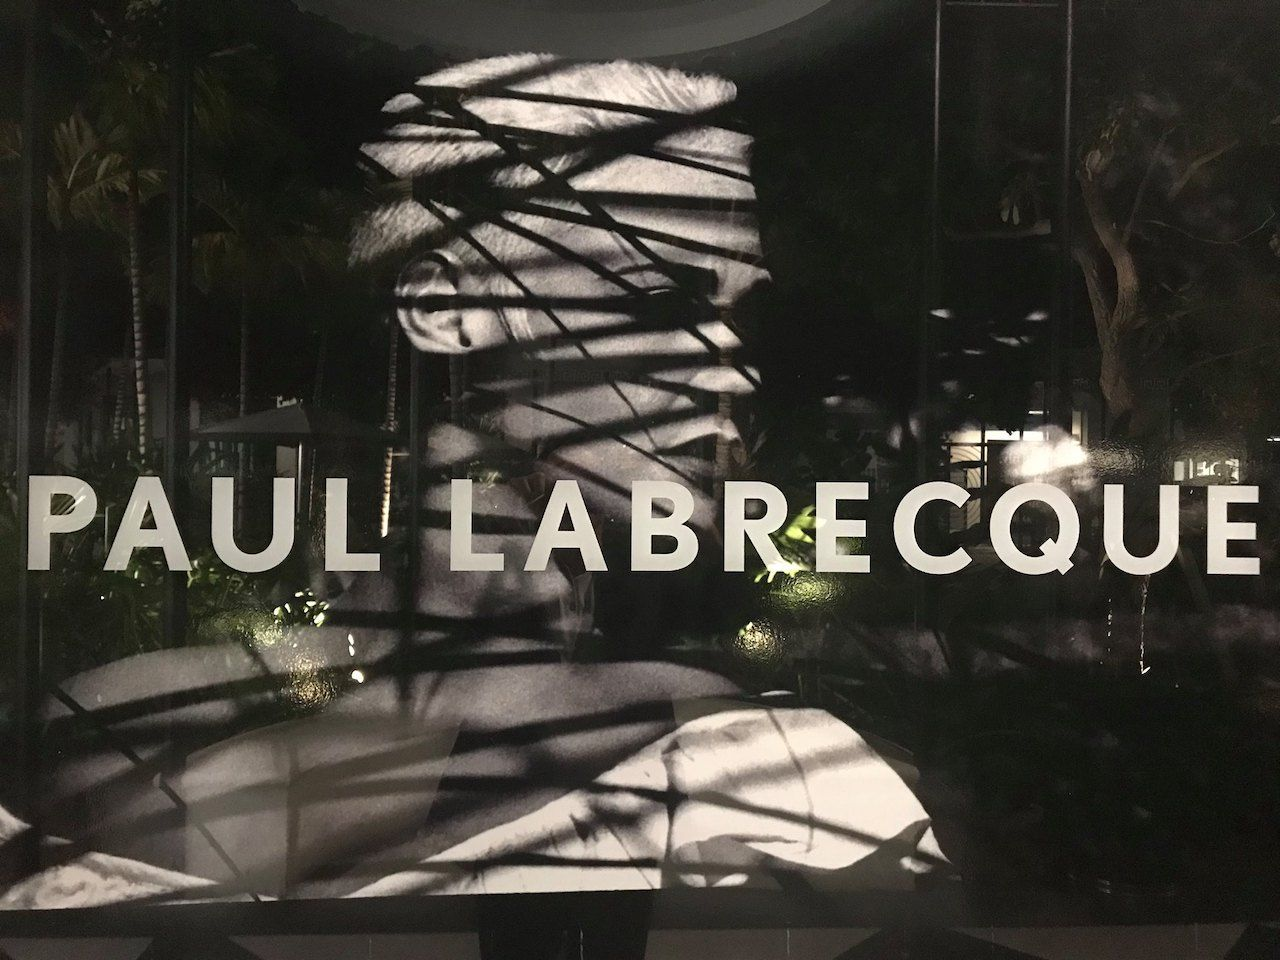 Paul Labrecque Salon and spa